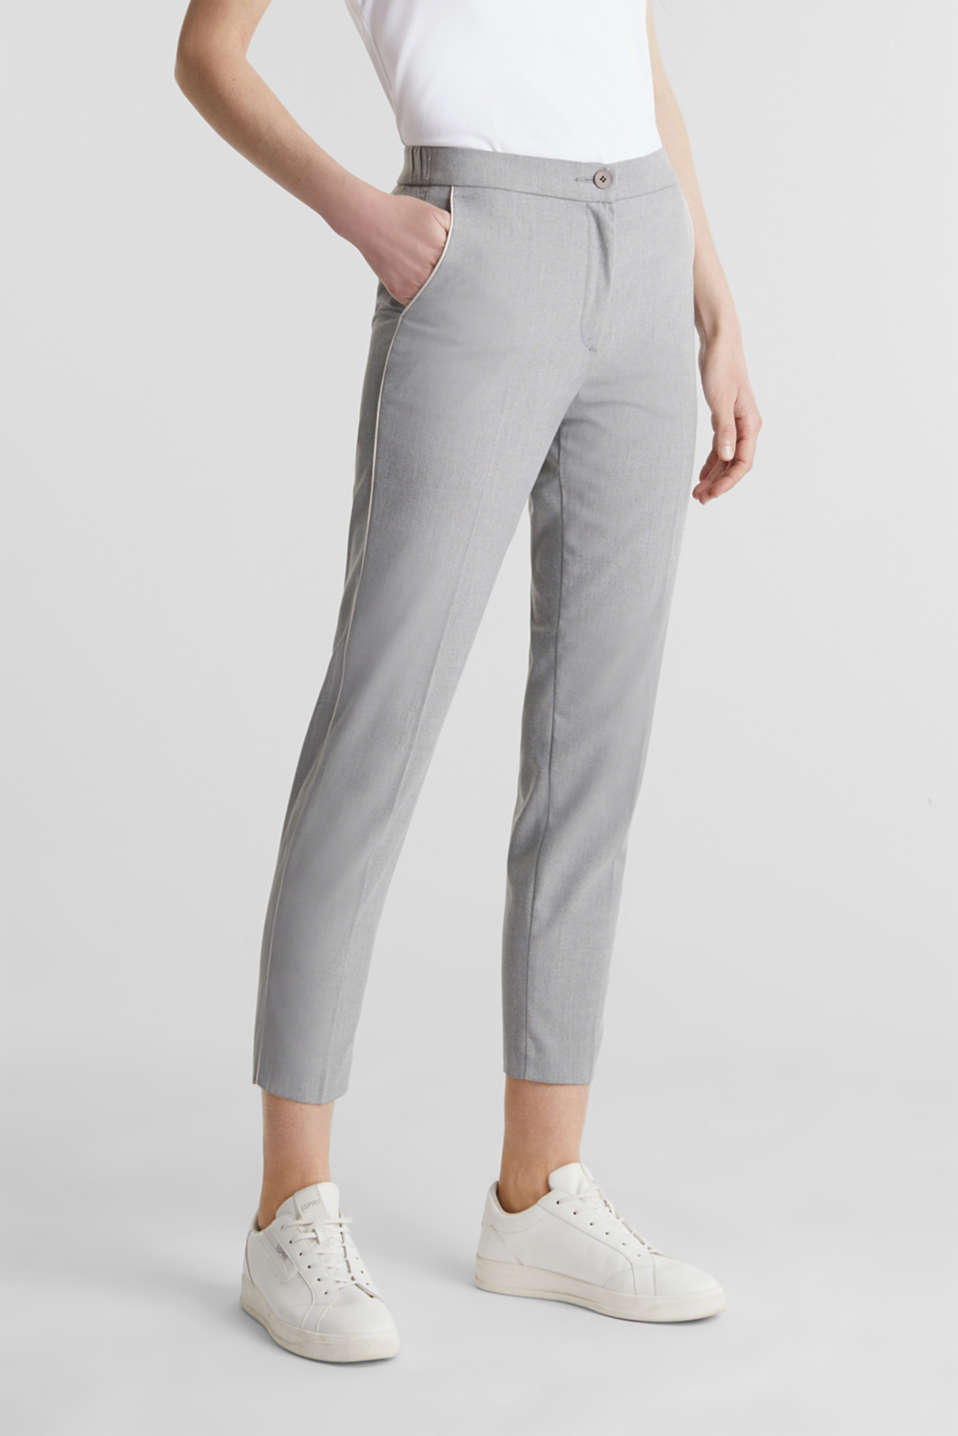 Melange trousers in a tracksuit bottom style, MEDIUM GREY 2, detail image number 0